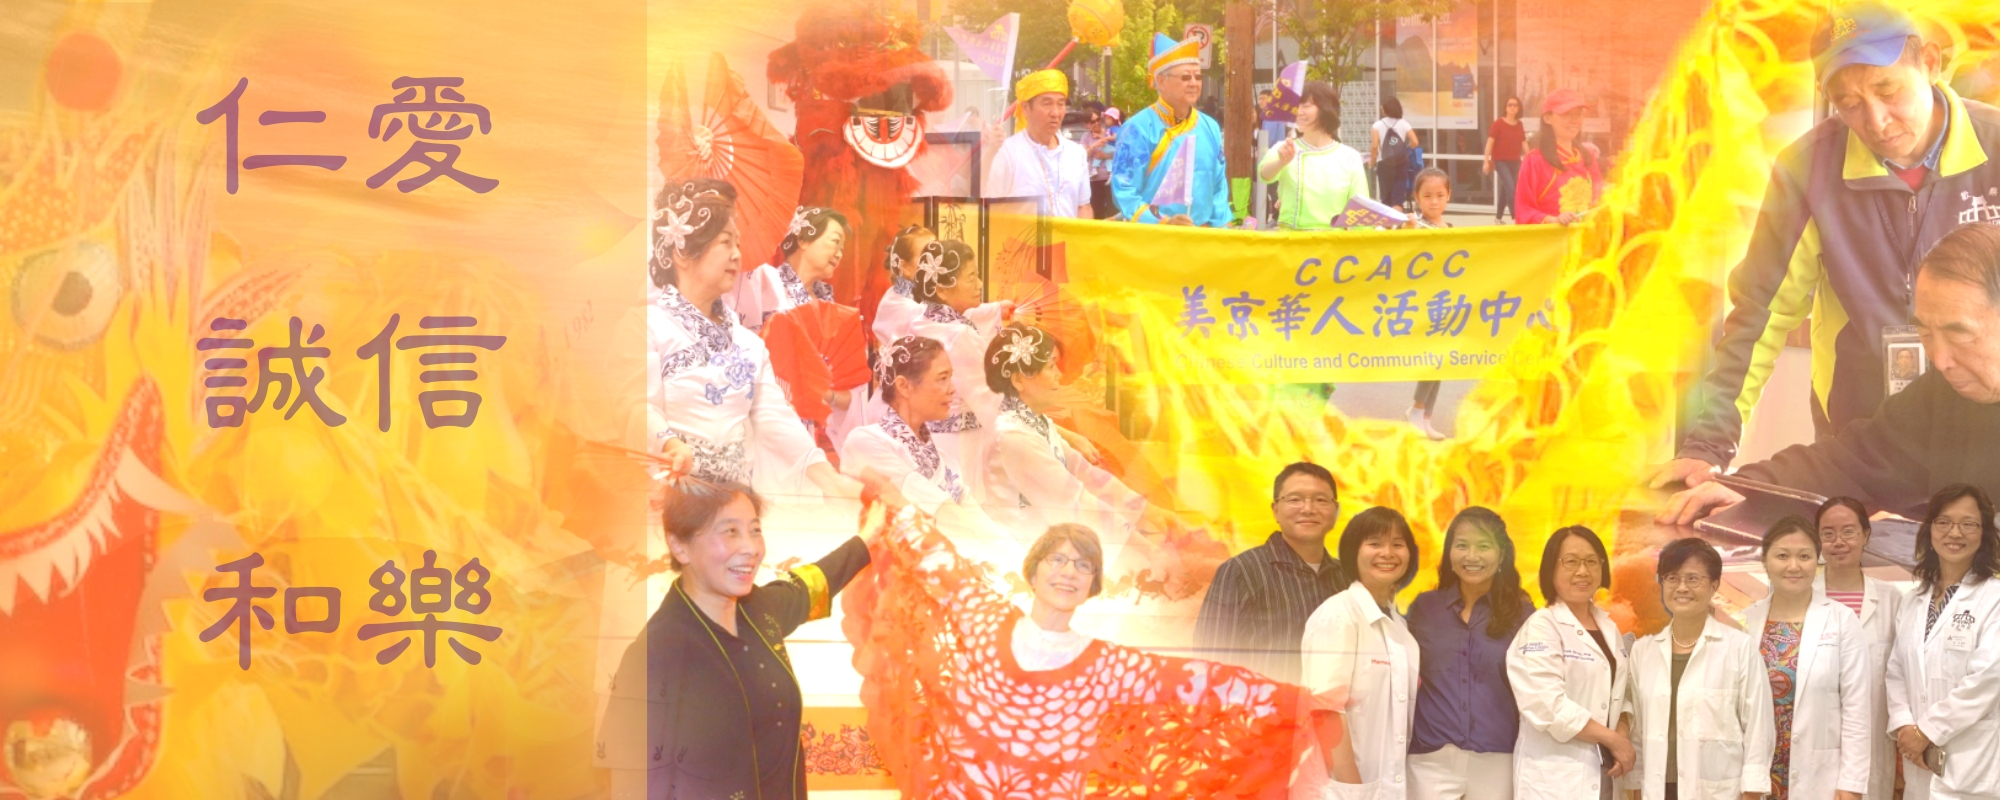 CCACC Chinese Banner